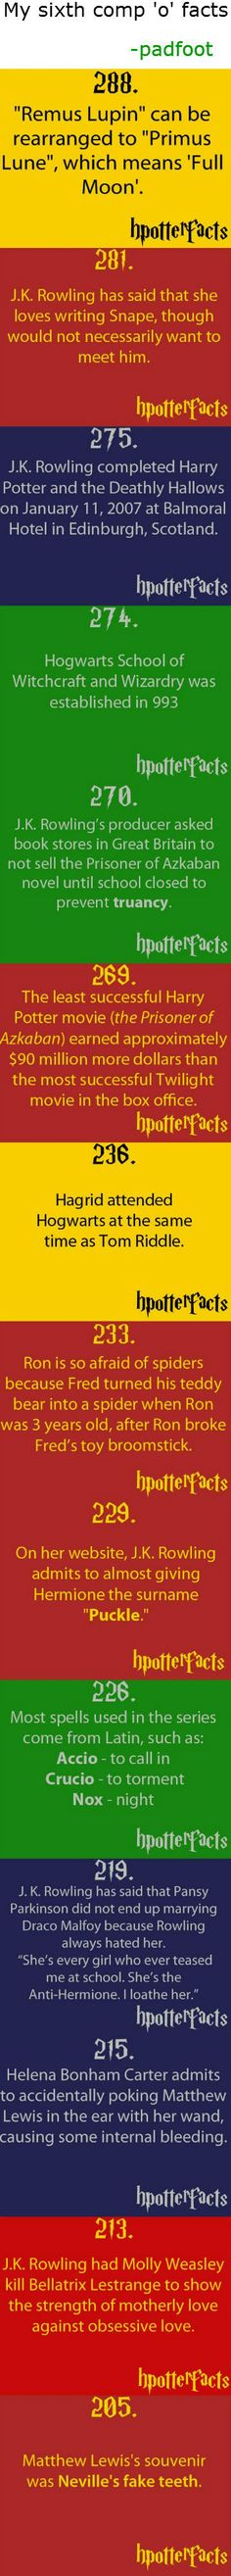 I knew most of them but Harry potter facts are always good to have in hand.